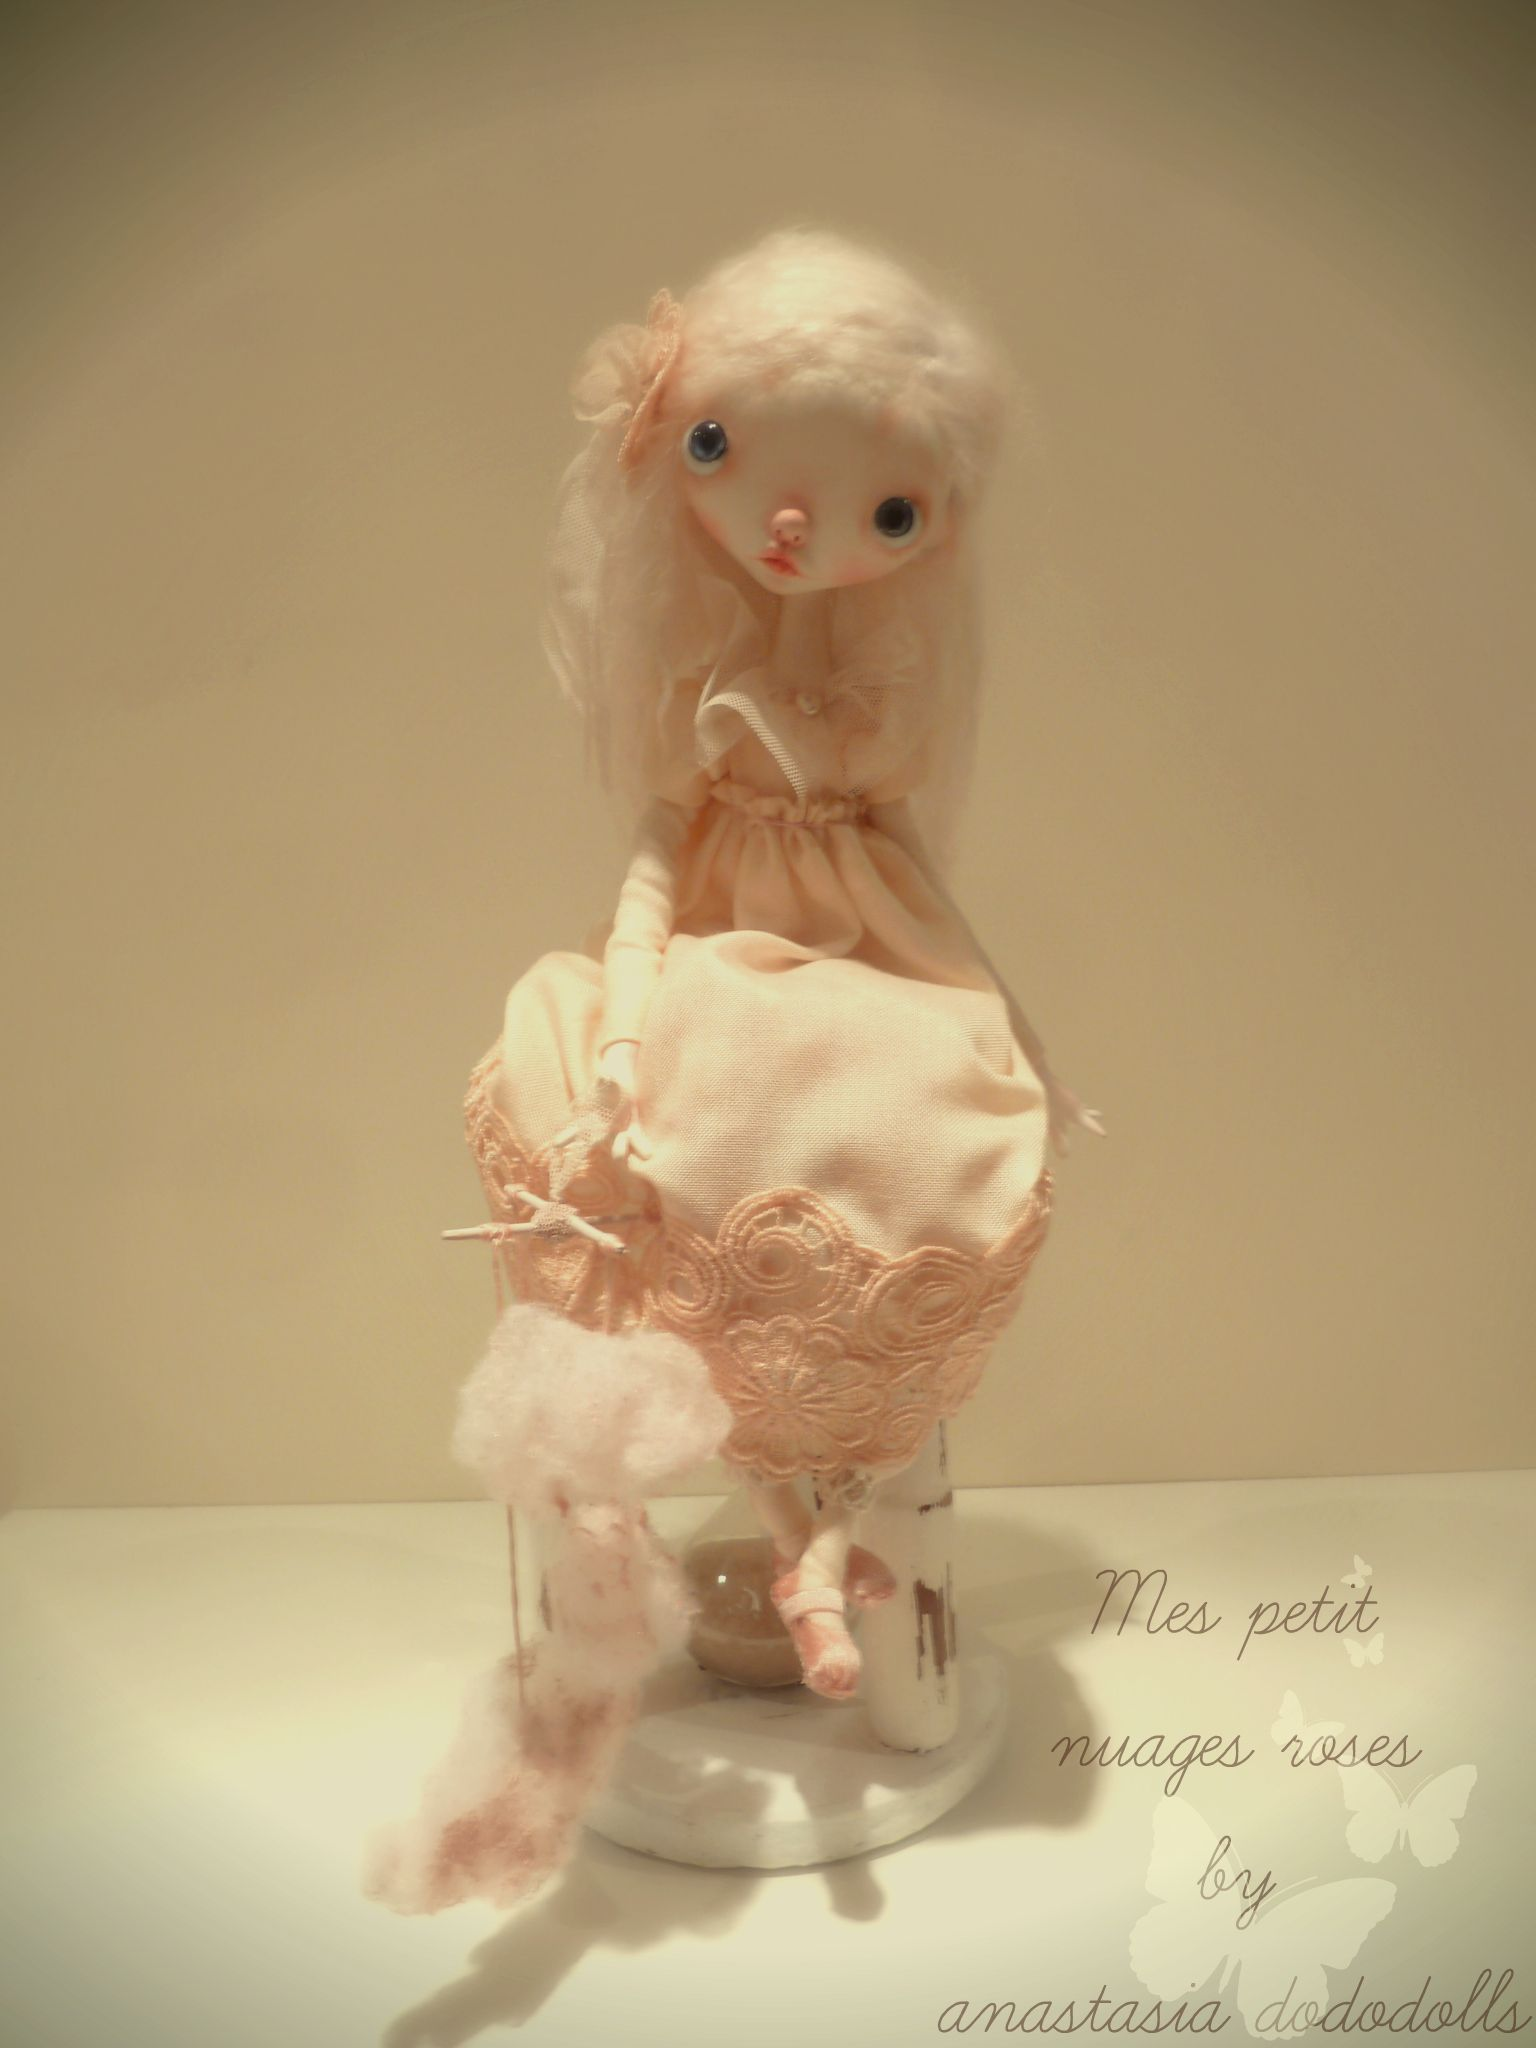 Mes petitis nuages roses by anastasia dododolls